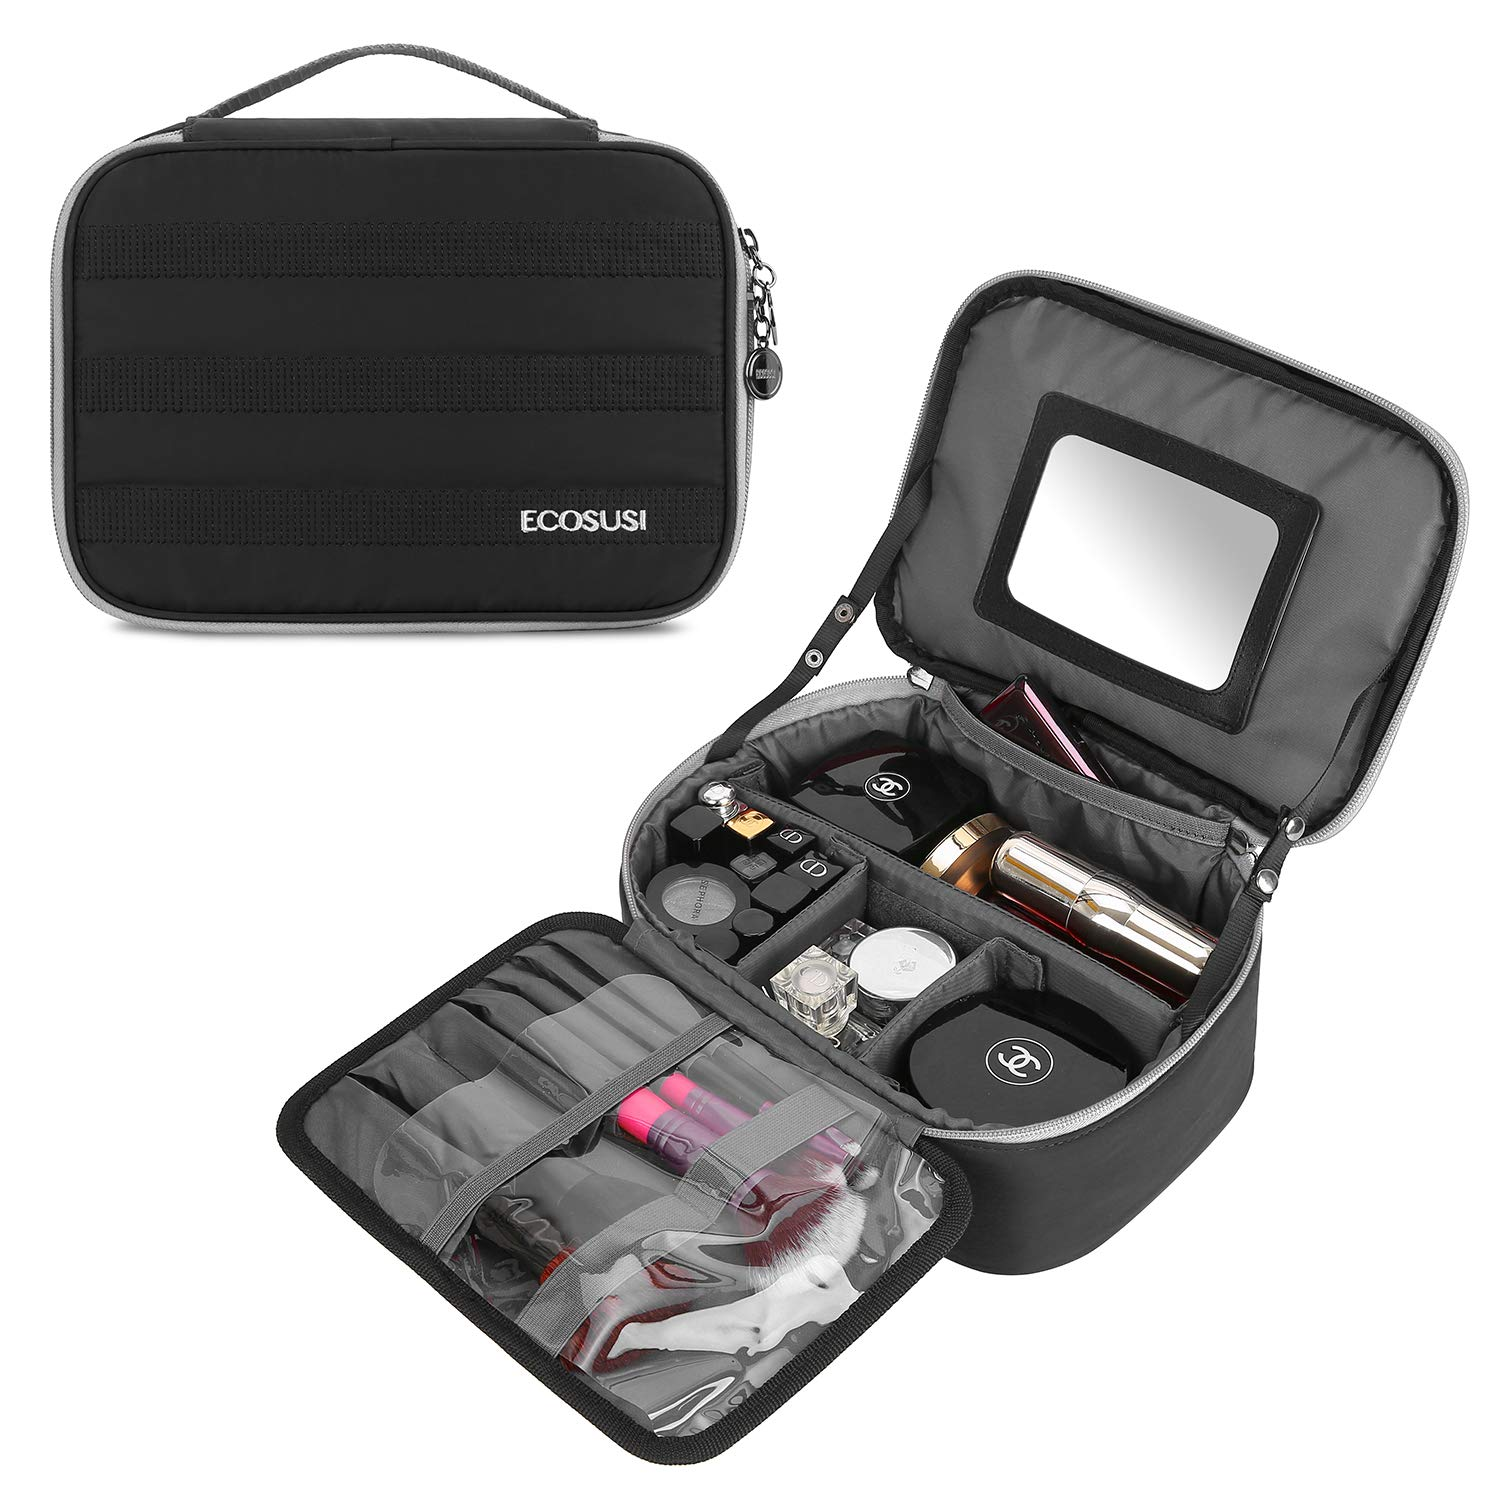 c4ff94c70a0e ECOSUSI Travel Makeup Bag Cosmetic Bag Organizer with Removable Mirror and  Adjustable Dividers